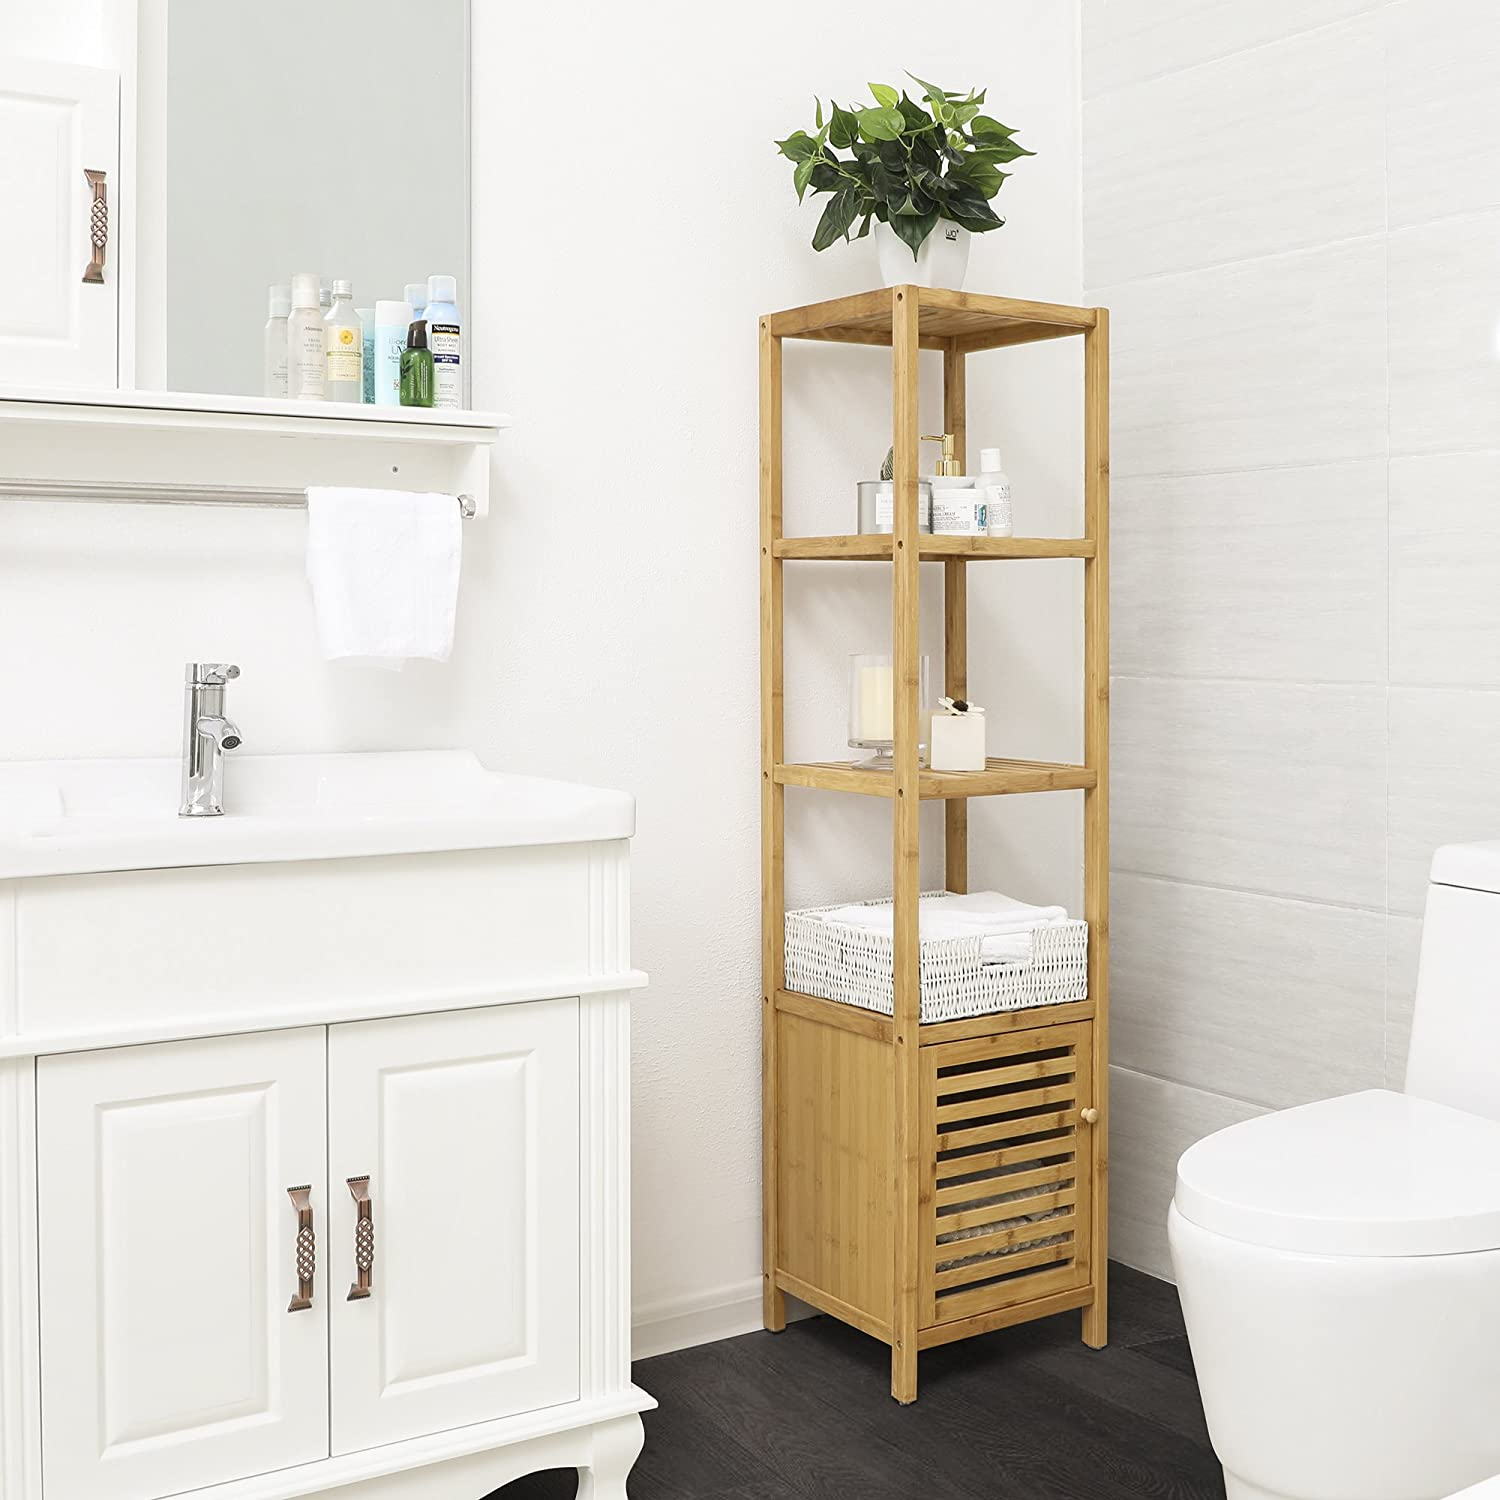 8 Best Bathroom Storage Cabinets For Small Spaces in 2019 ...